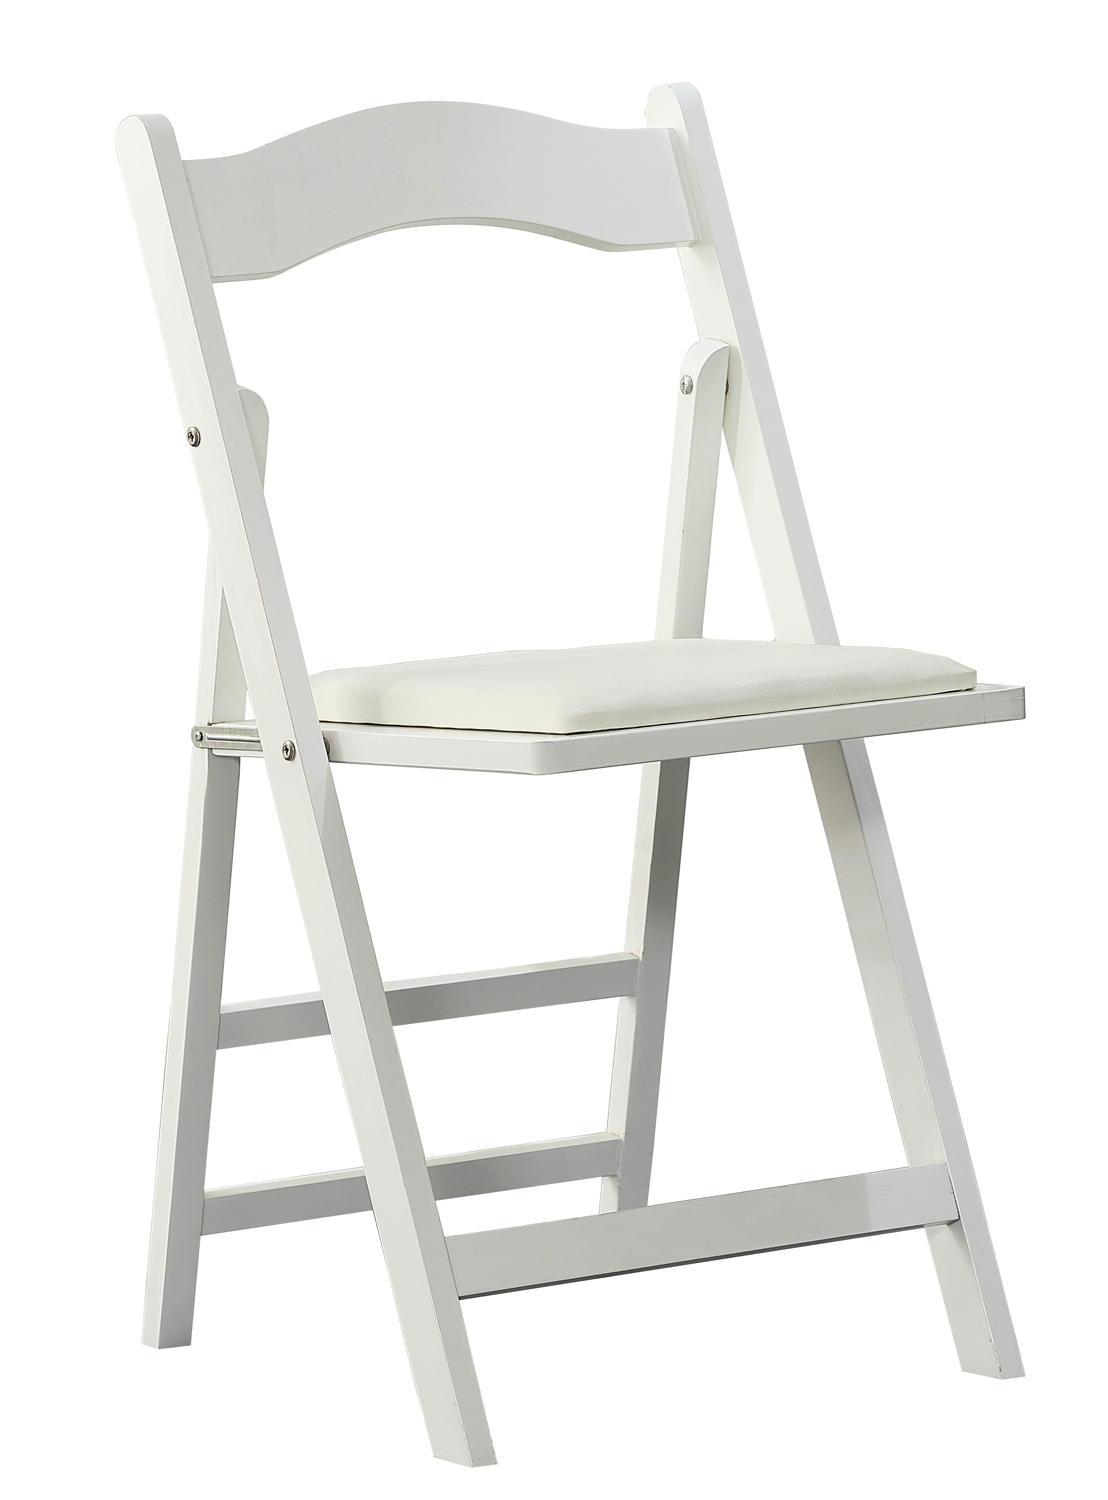 orolay wood folding chair white the living decor. Black Bedroom Furniture Sets. Home Design Ideas